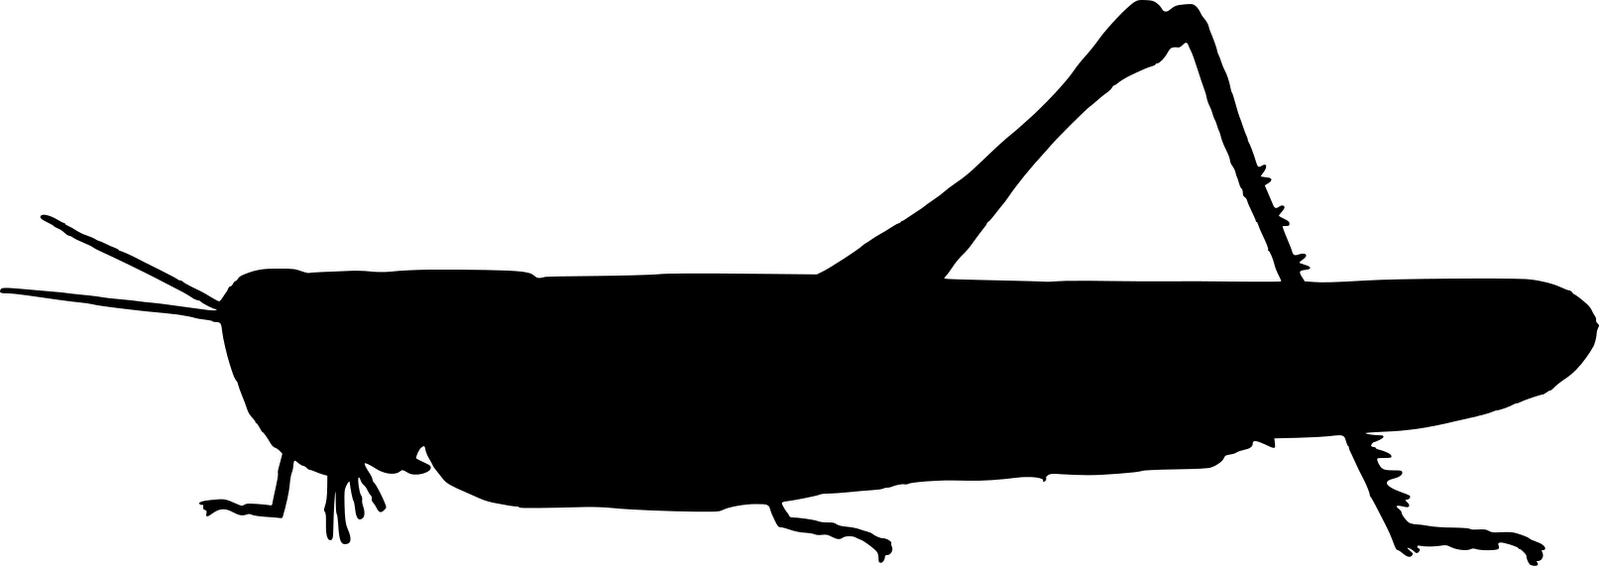 Silhouette grasshoppers clipart